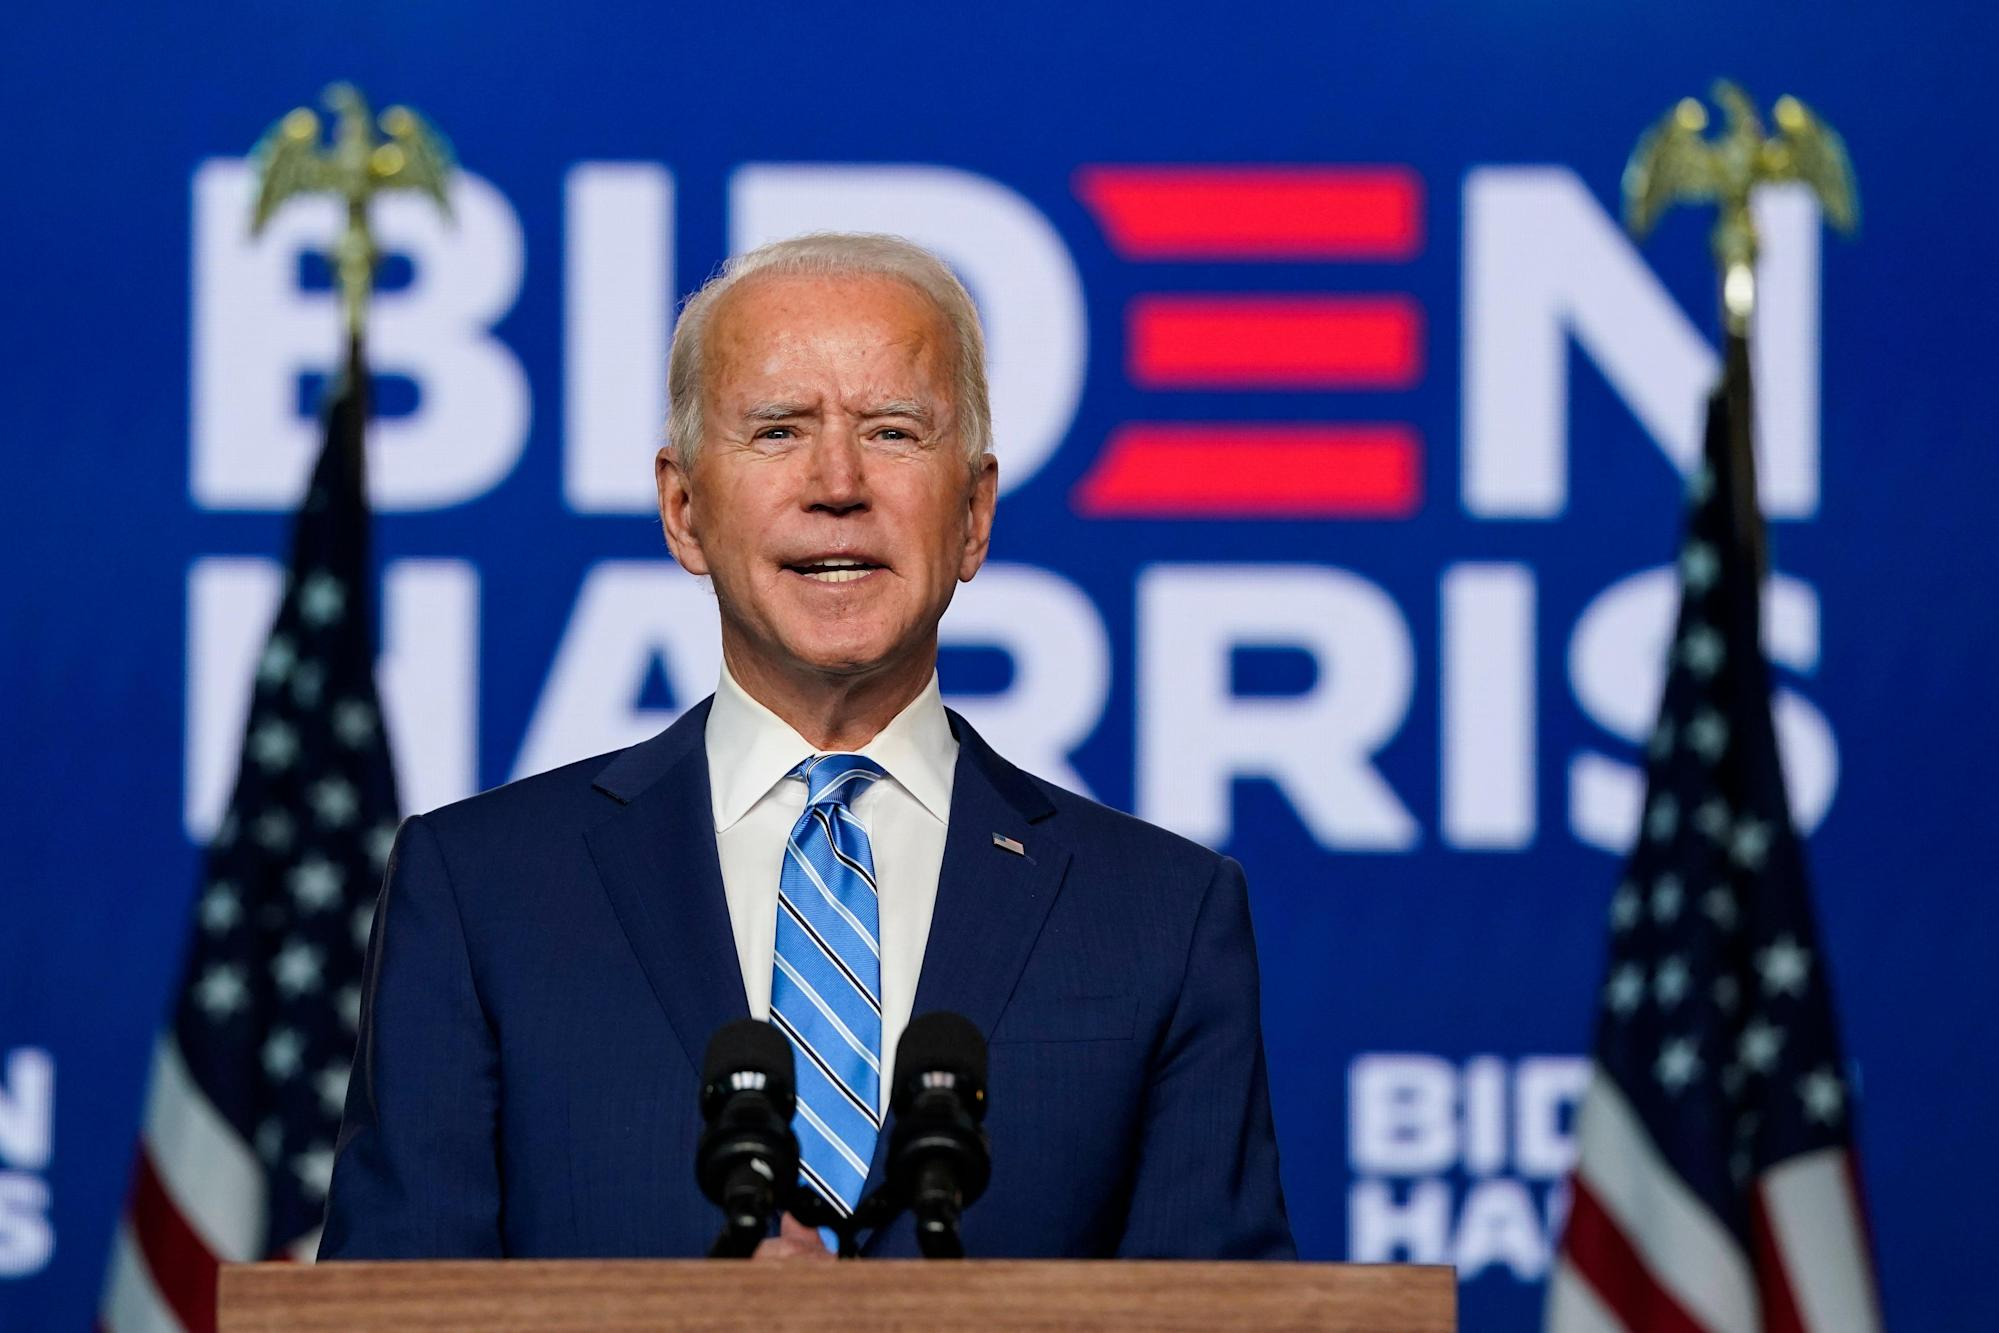 Joe Biden says he's not naive. After these election results, we'll see about that